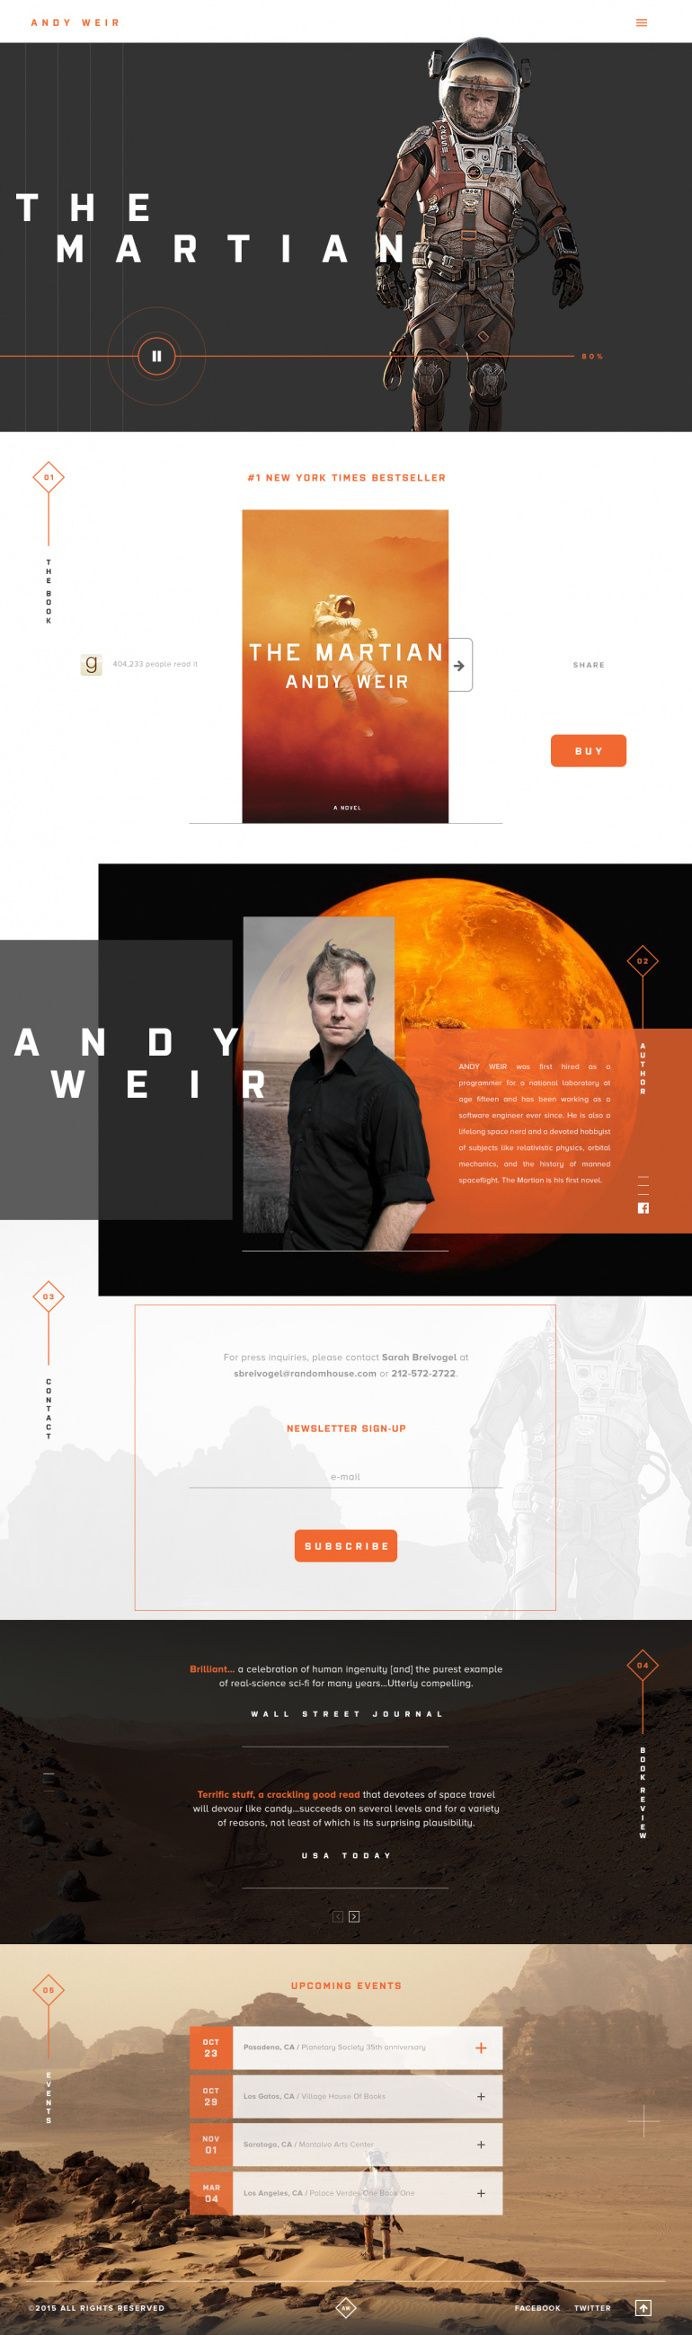 This is a very slick and cool website. I think that the Andy Weir name is difficult to read the way that it is kerned. I would have kerned the text closer together.